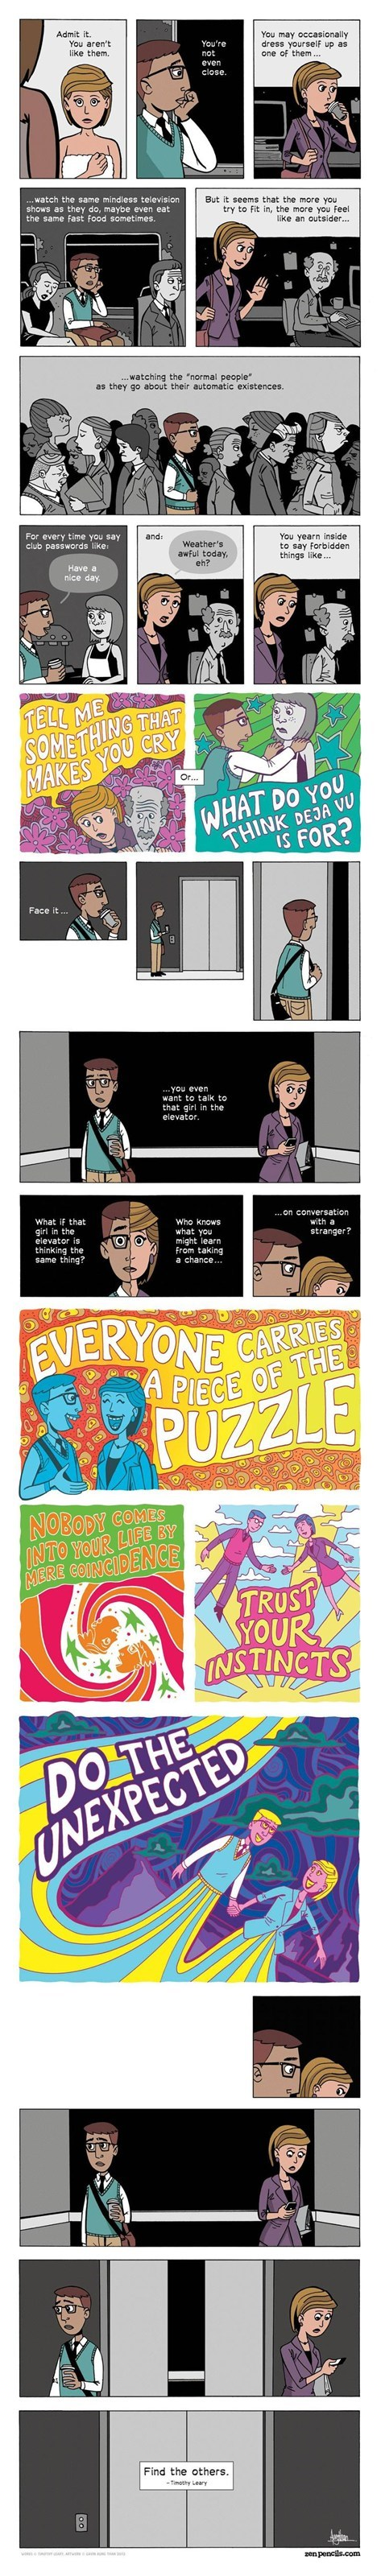 hello comics inspirational zen pencils dating fails g rated